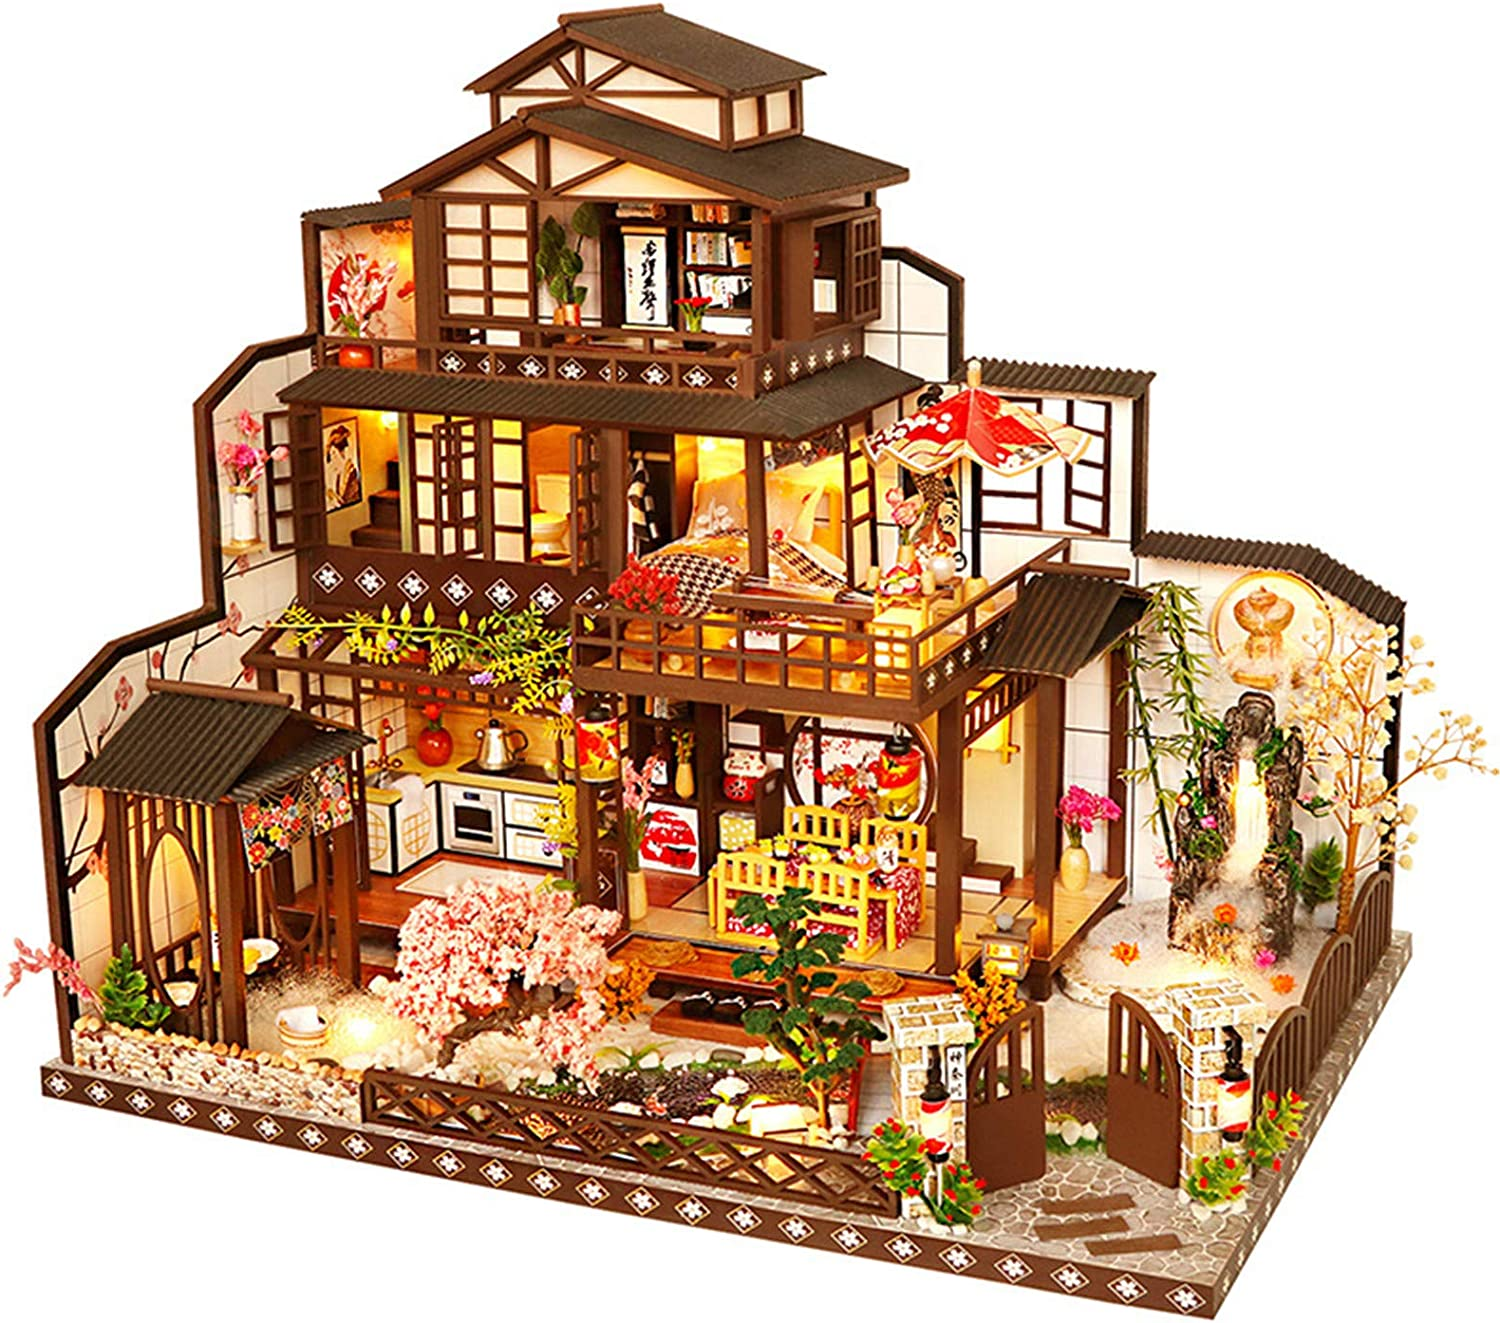 LI&muzi Doll House Miniature Furniture DIY Dollhouse Chinese and Japanese Mixed Style Kit Assembled Miniature Toys for Kids Adult Gifts